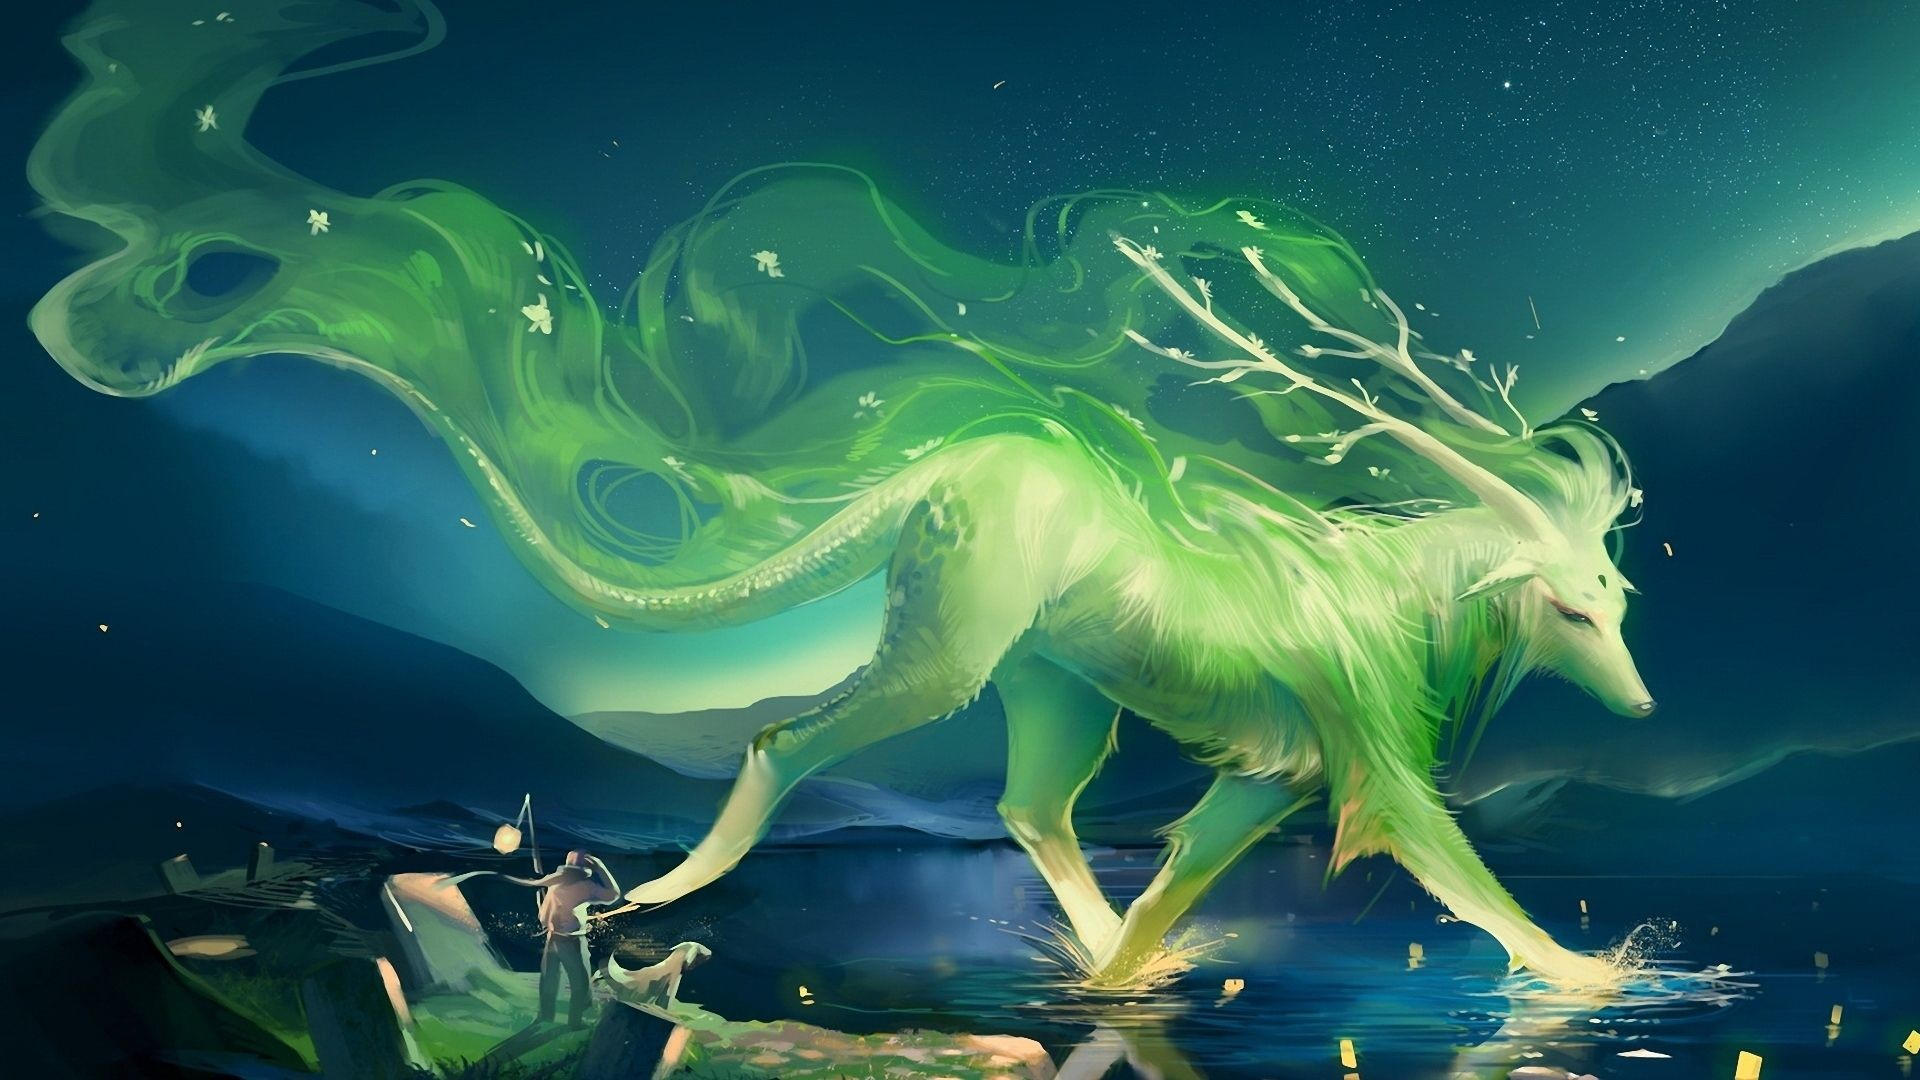 Res: 1920x1080, Anime Fantasy Wallpapers - Wallpaper Cave